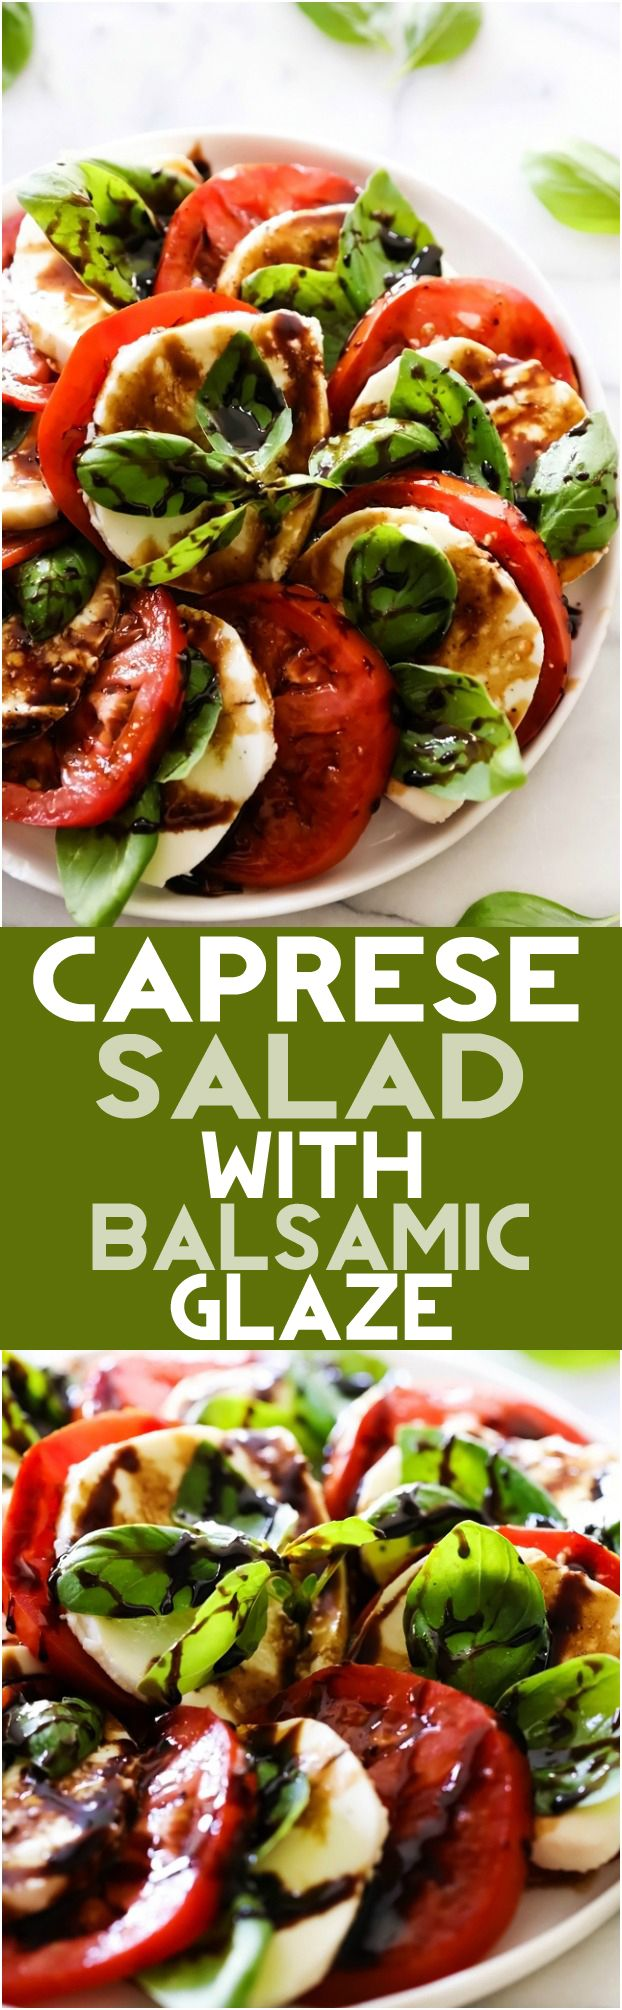 Caprese Salad with Balsamic Glaze... A refreshing and light salad comprised of tomatoes, mozzarella and basil. It is topped with an incredible Honey Balsamic Glaze that ties all the flavors together for an incredible meal, side dish or snack.